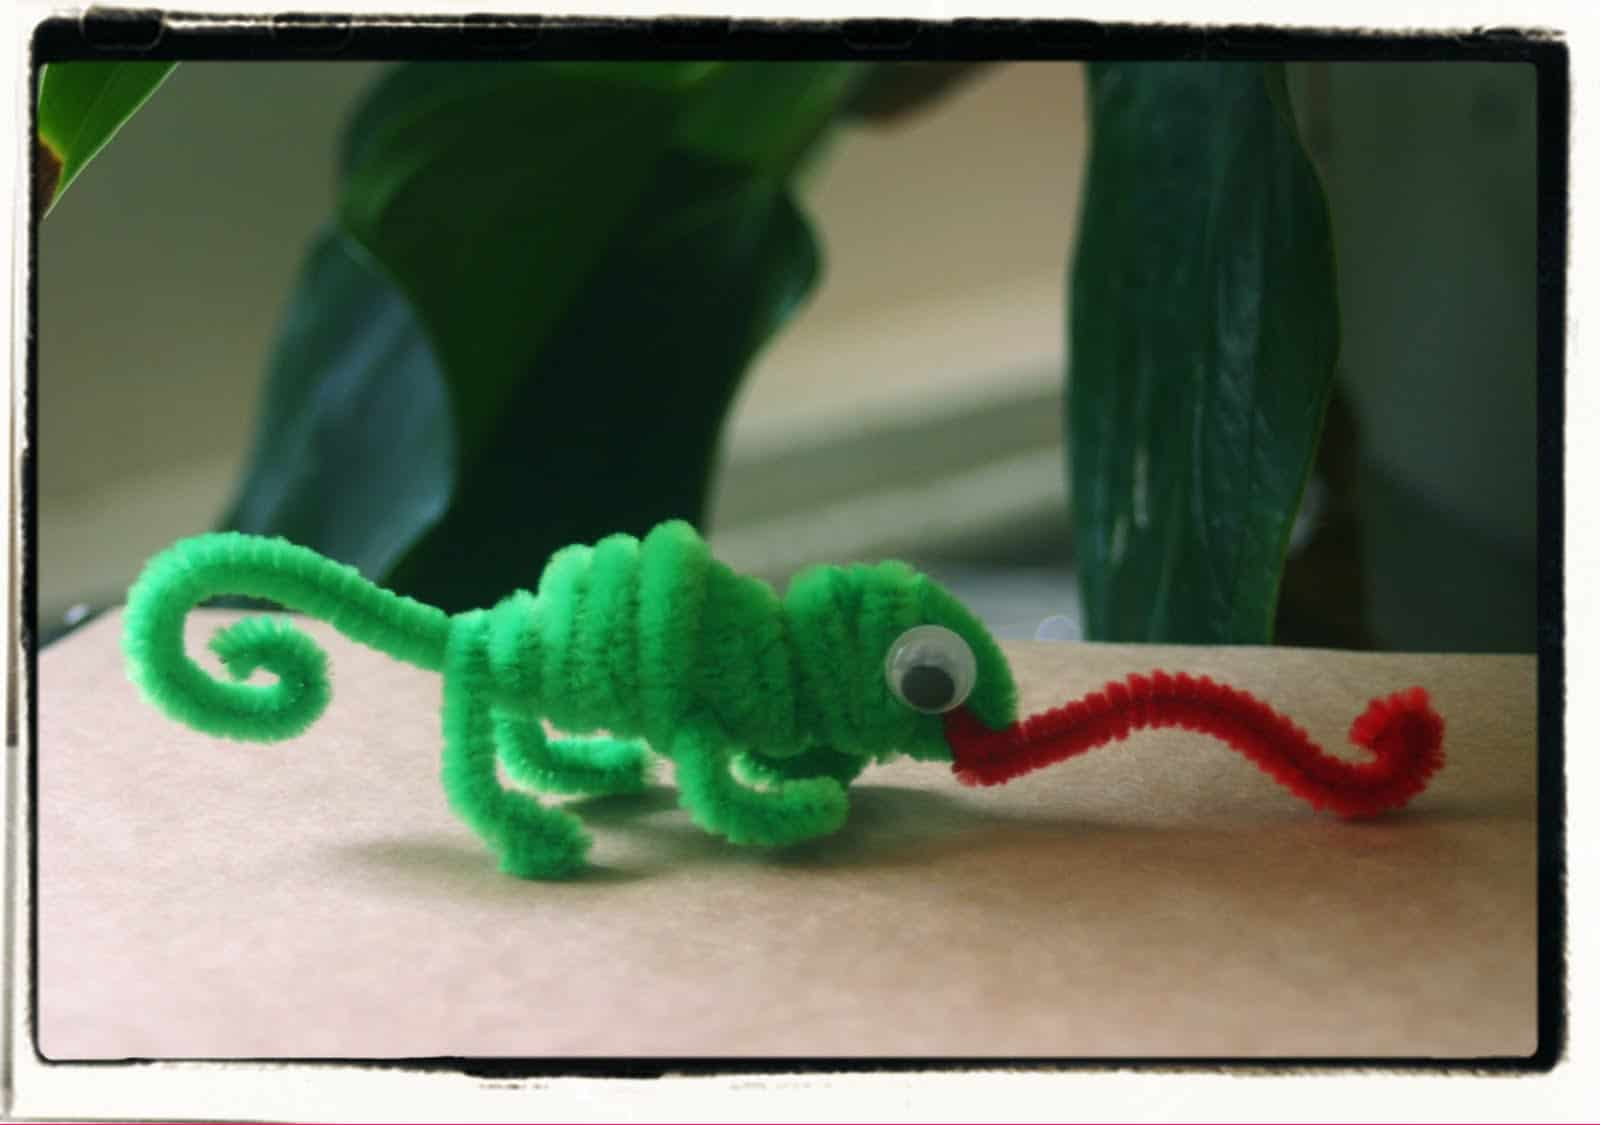 Twisted pipe cleaner lizards